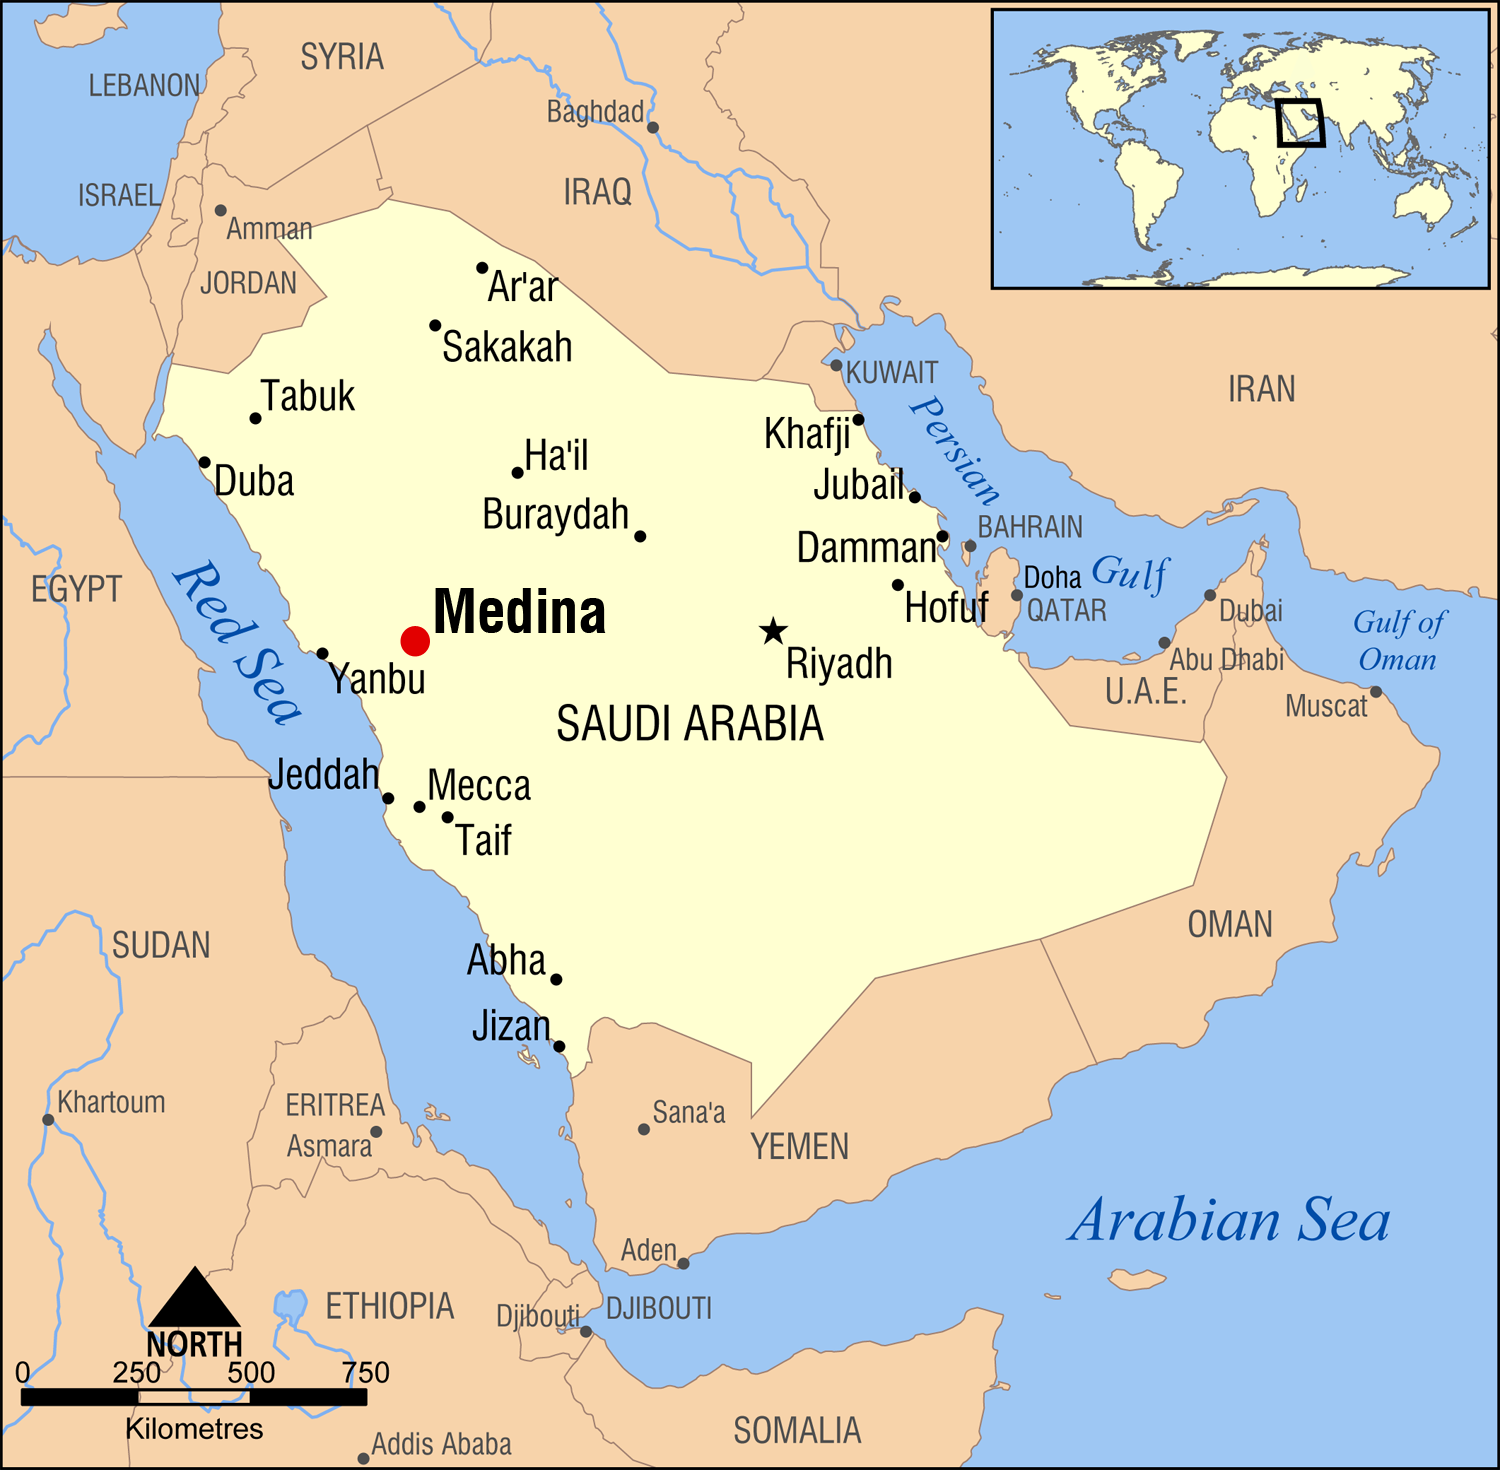 news from egypt, saudi arabia and uzbekistan Egypt Saudi Arabia Map medina_saudi_arabia_map egypt saudi arabia bridge